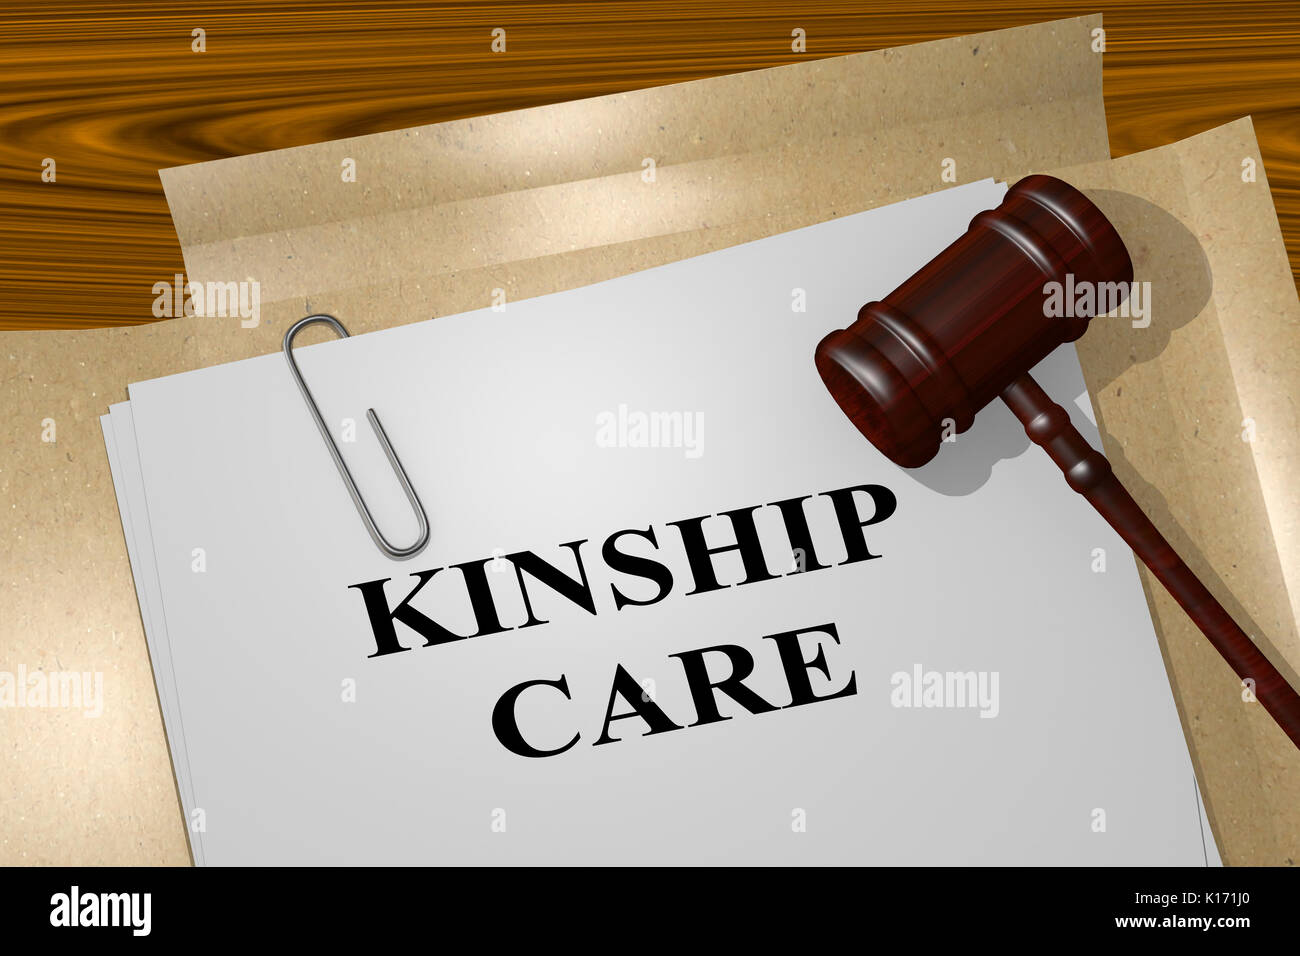 3D illustration of 'KINSHIP CARE' title on legal document - Stock Image